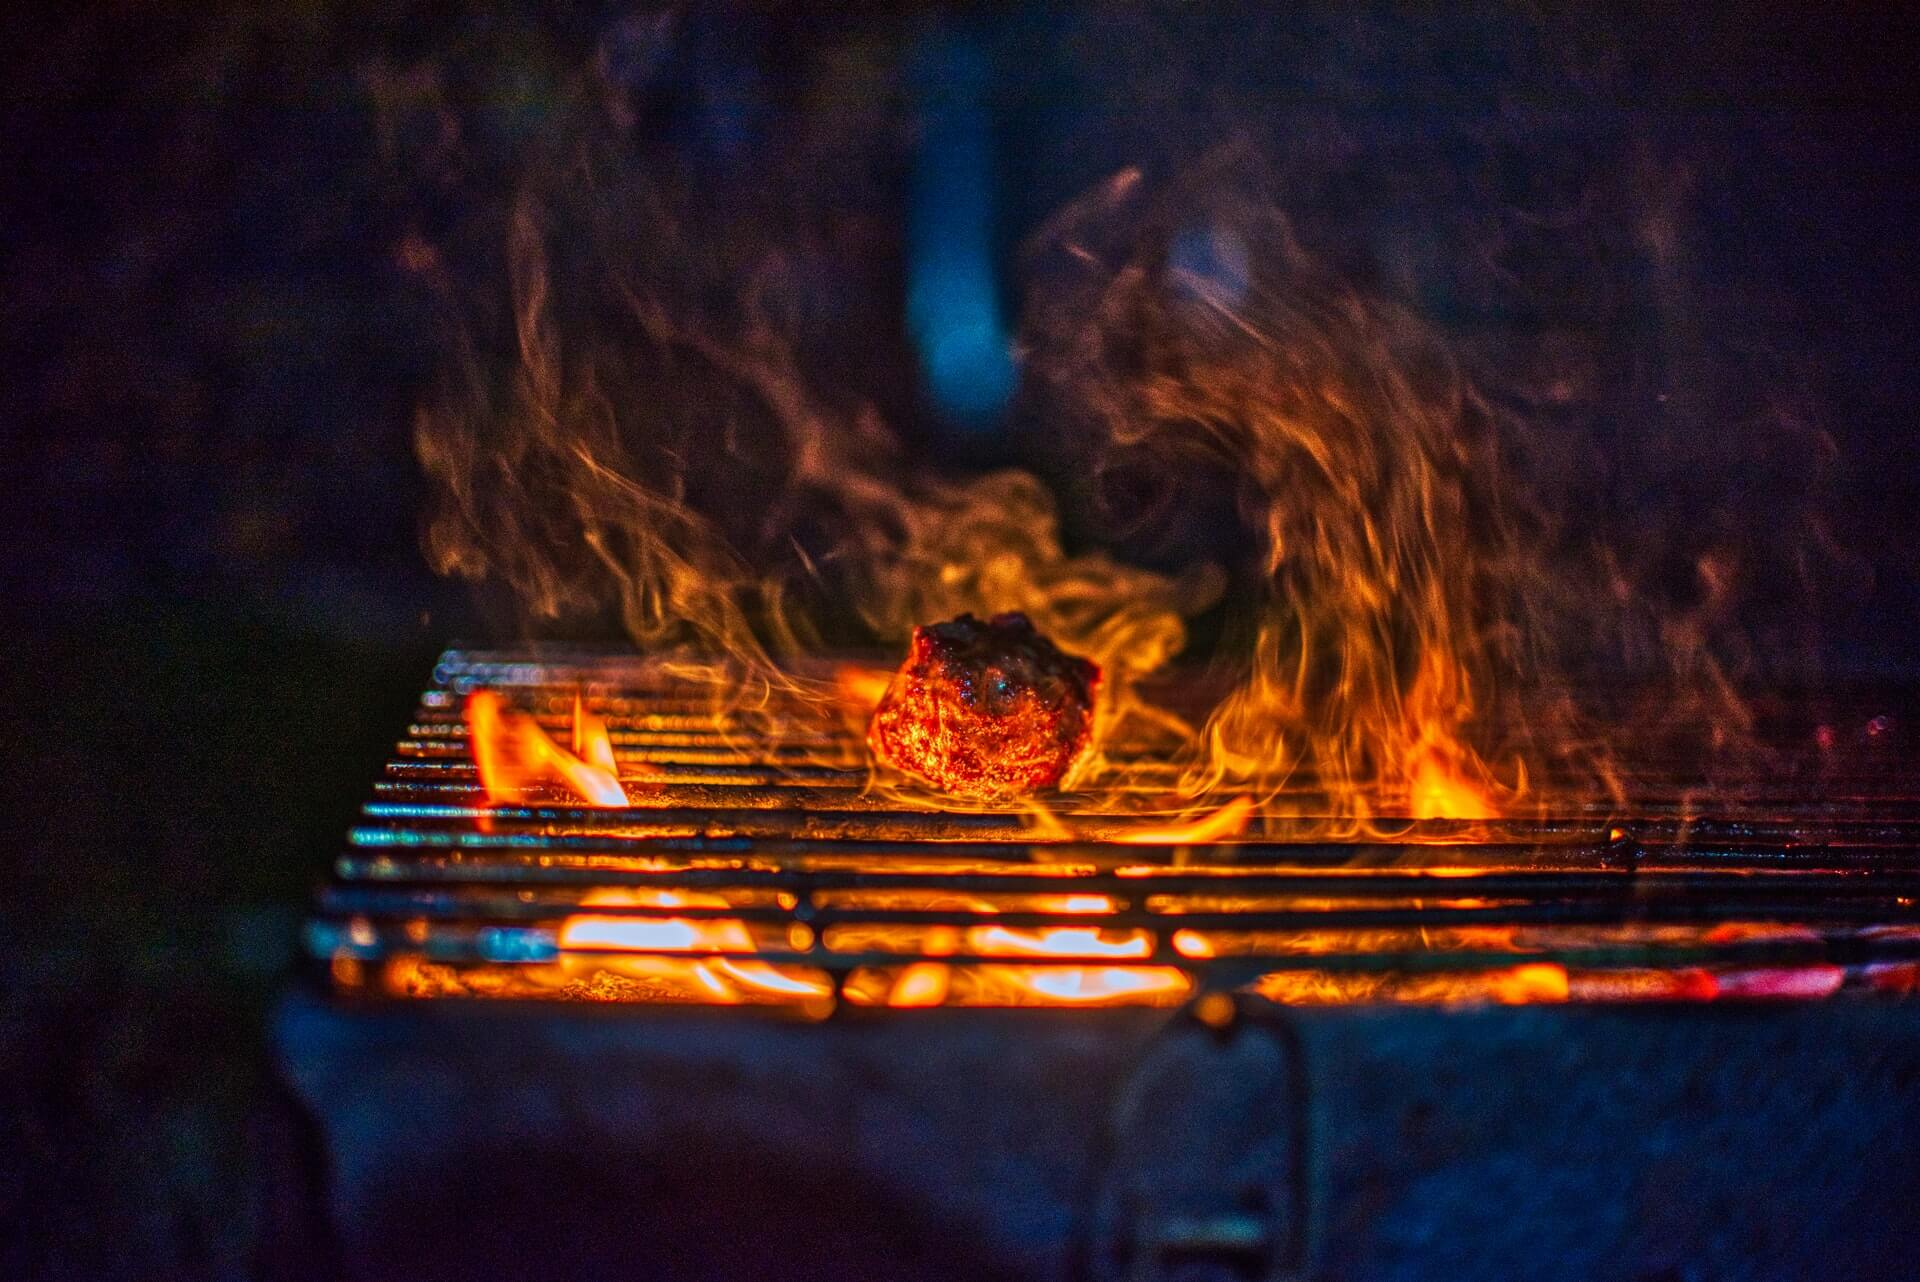 Best Gas Grill under $300 for Delicious and Easy Home Grilling.